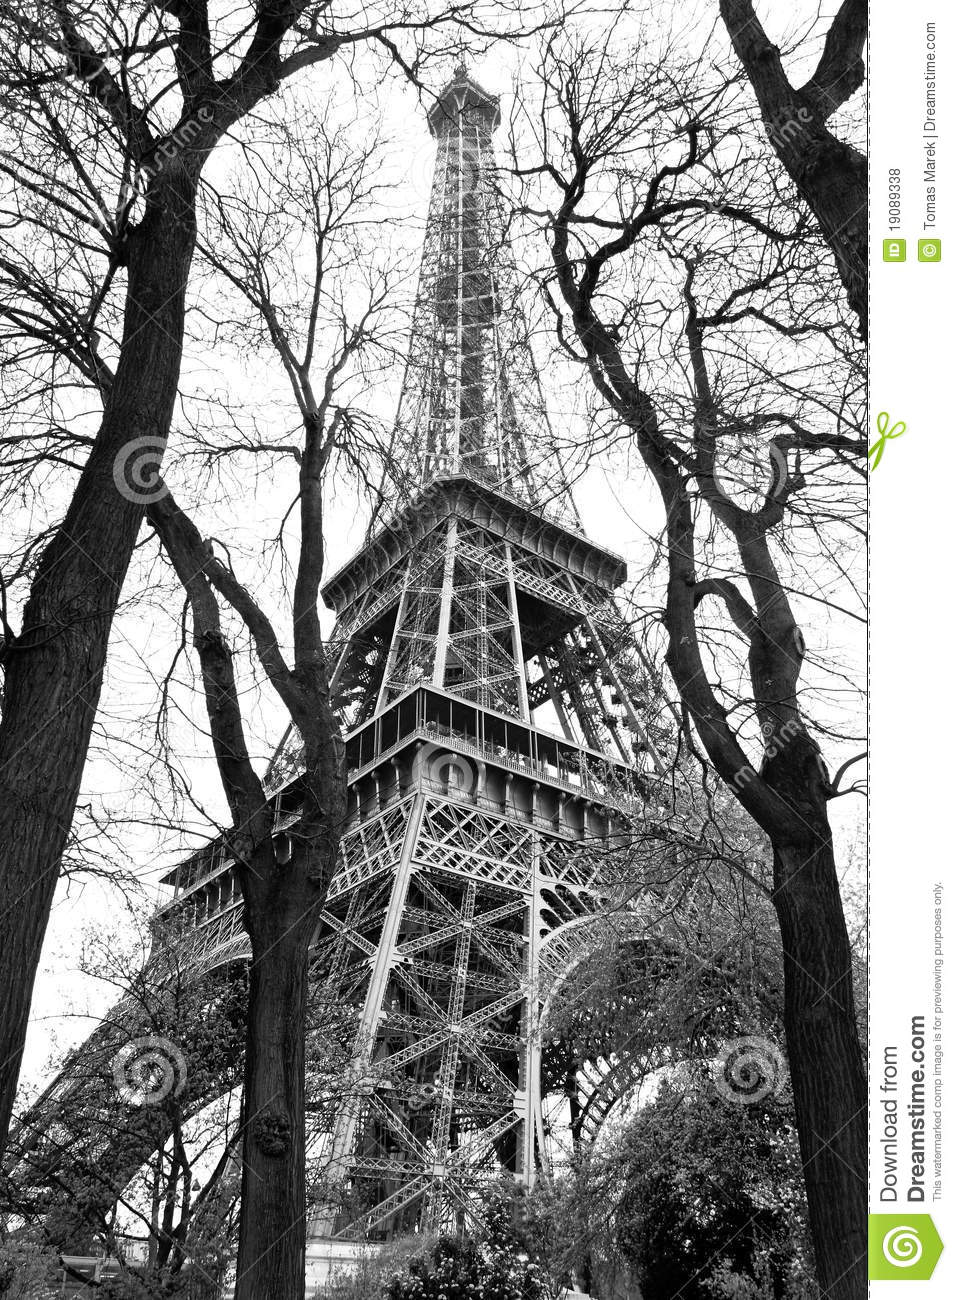 Stock Image Dreamstime Eiffel Tower In Black And White Style Paris Stock Photo